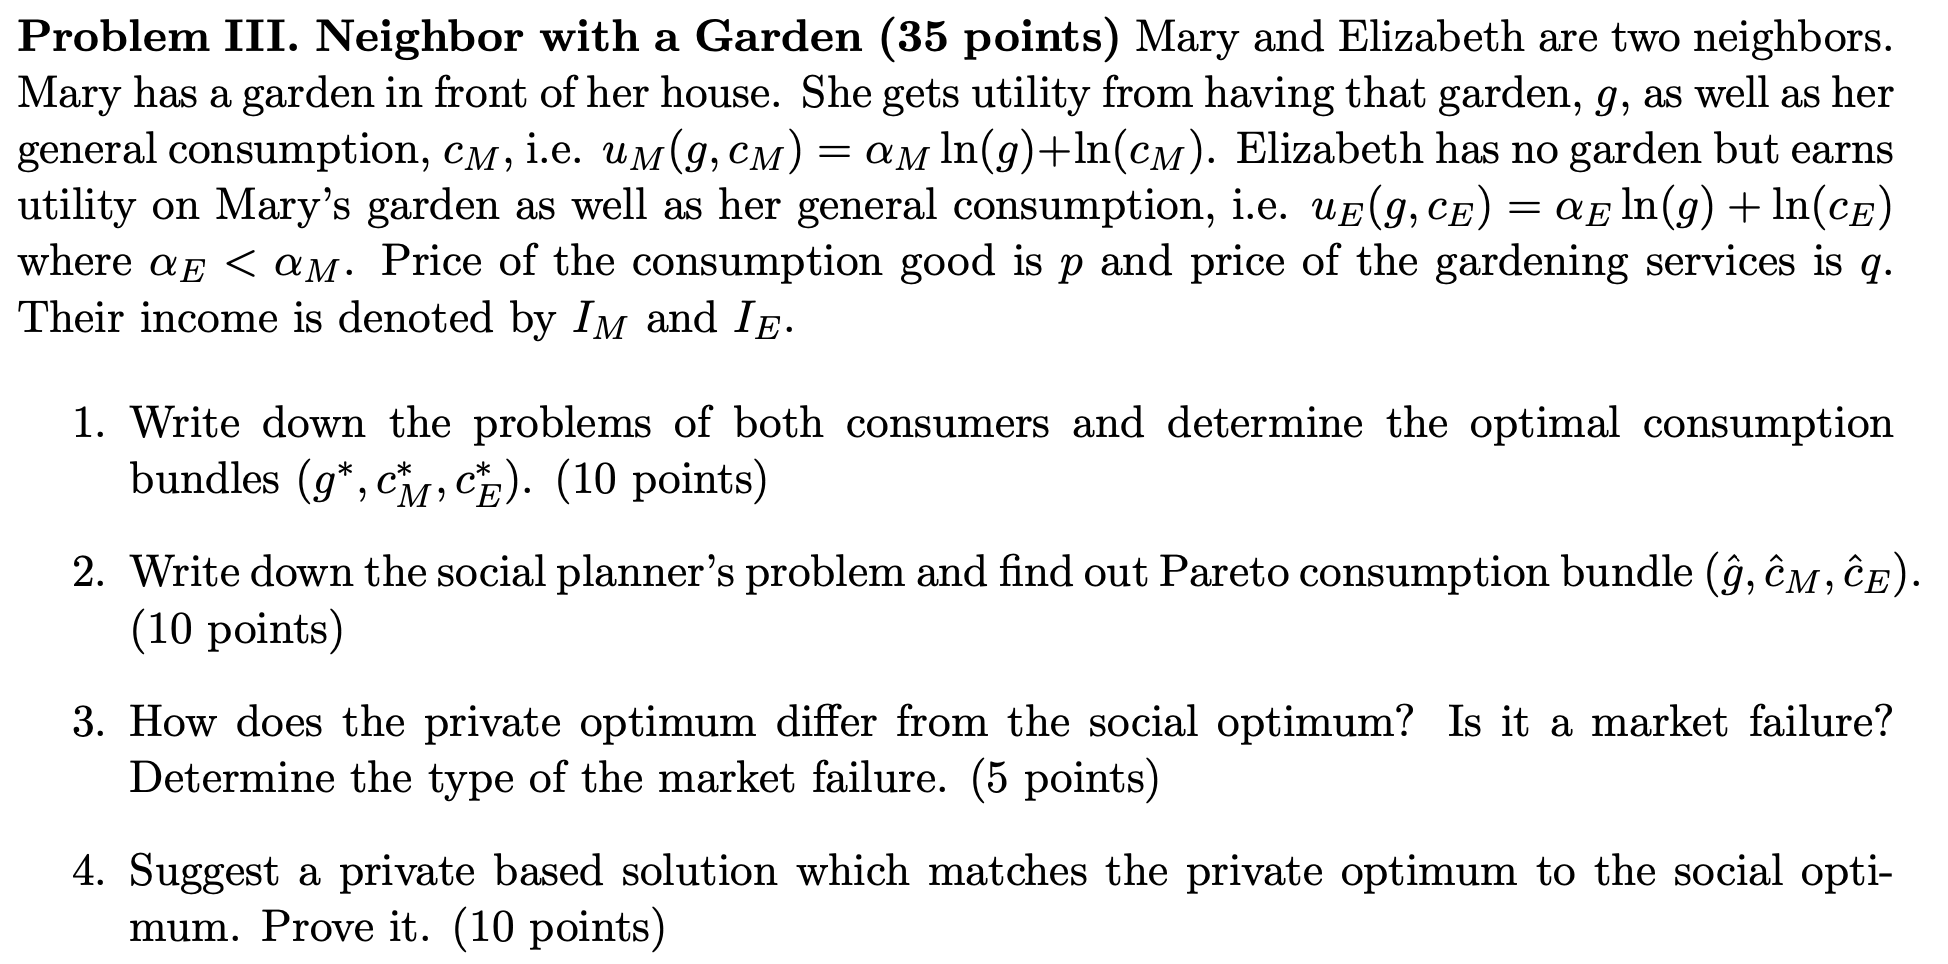 Problem III. Neighbor with a Garden (35 points) Mary and Elizabeth are two neighbors. Mary has a garden in front of her house